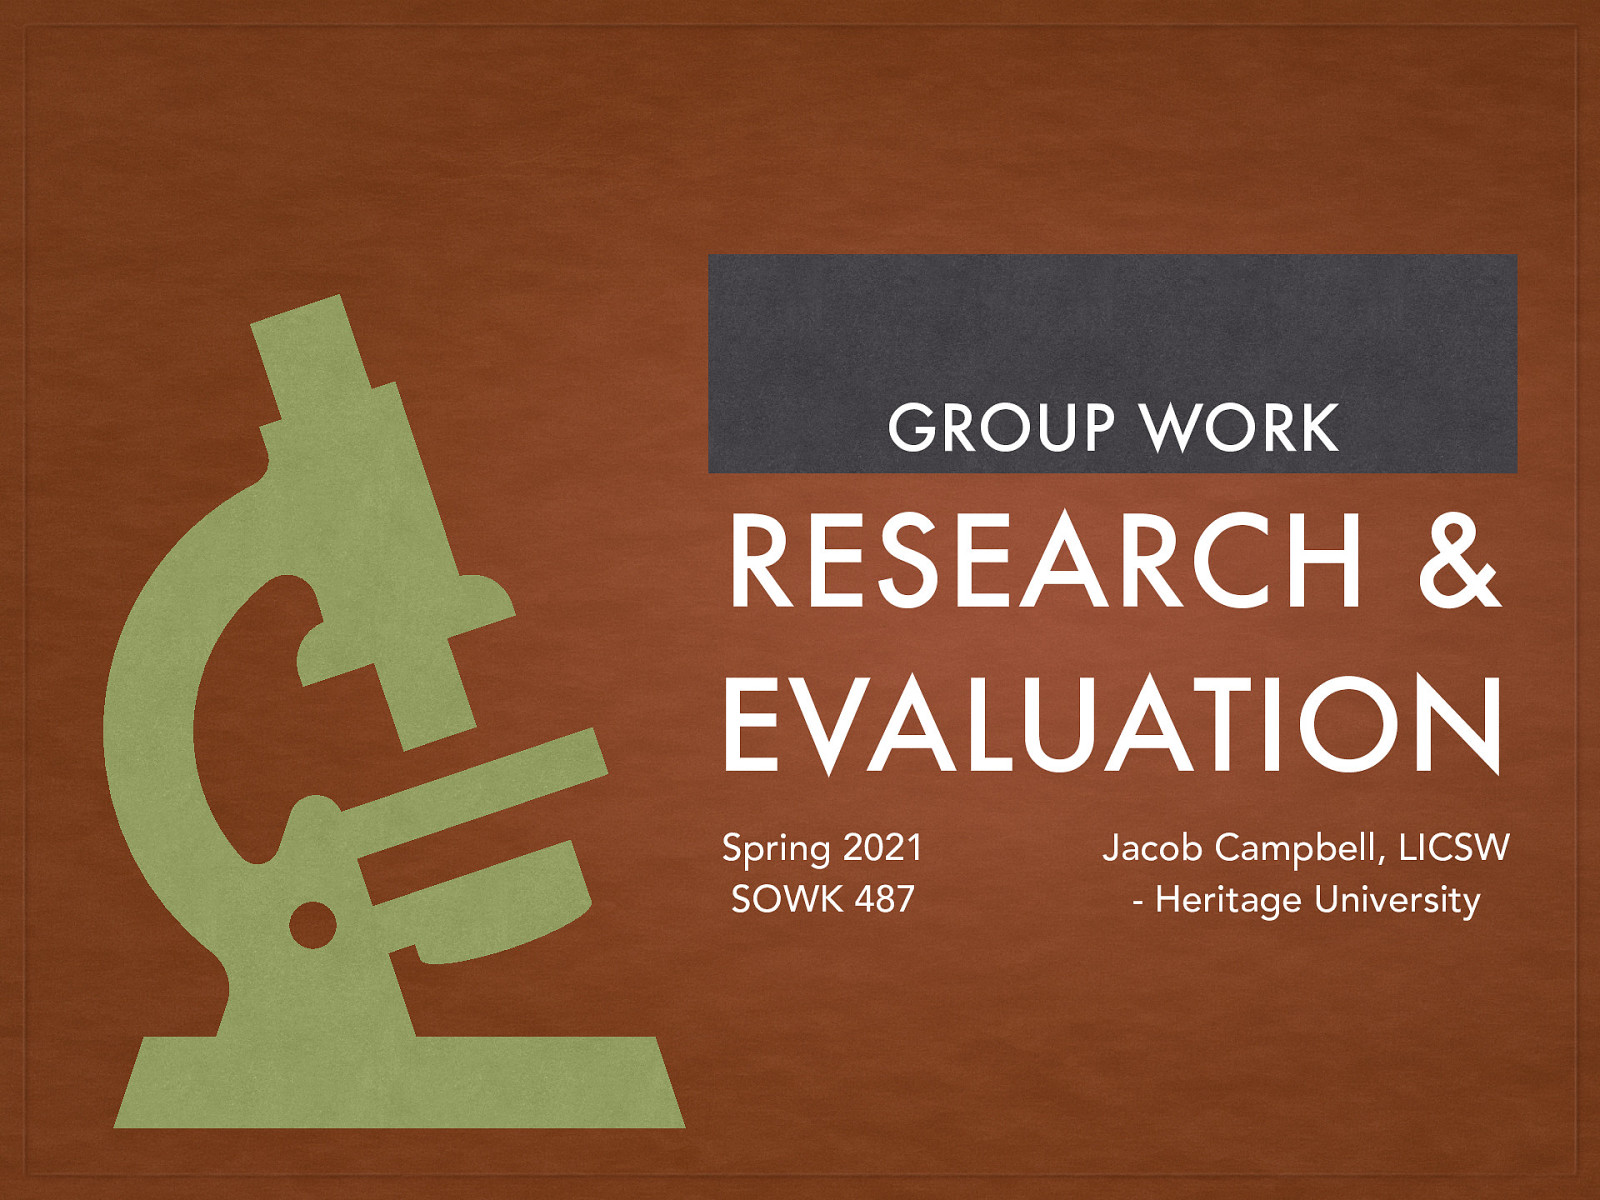 SOWK 487 Week 16 - Group Work Research and Evaluation